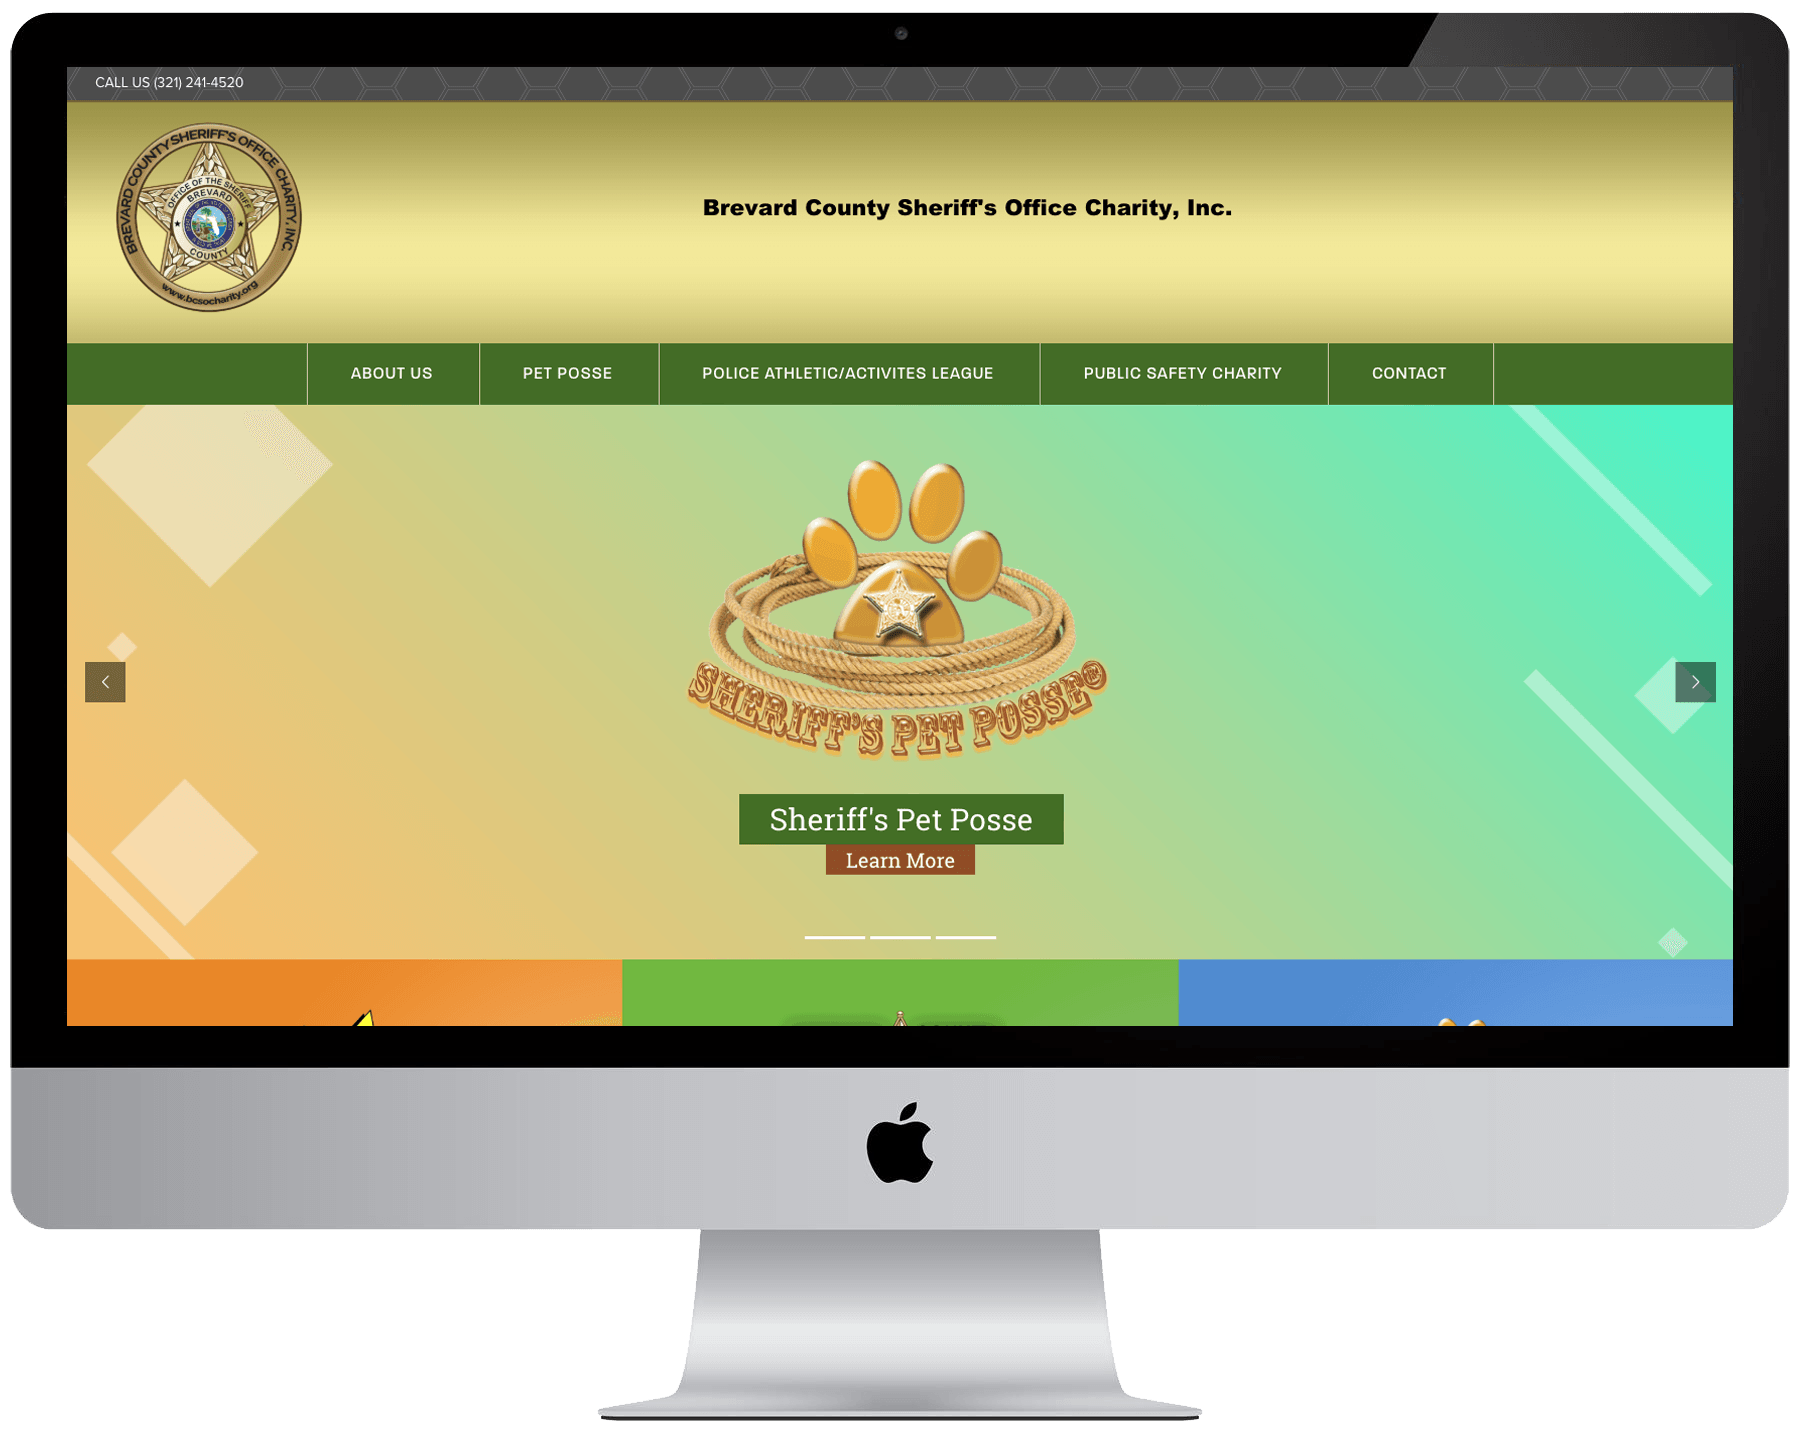 Brevard County Sheriff's Office Charity Website